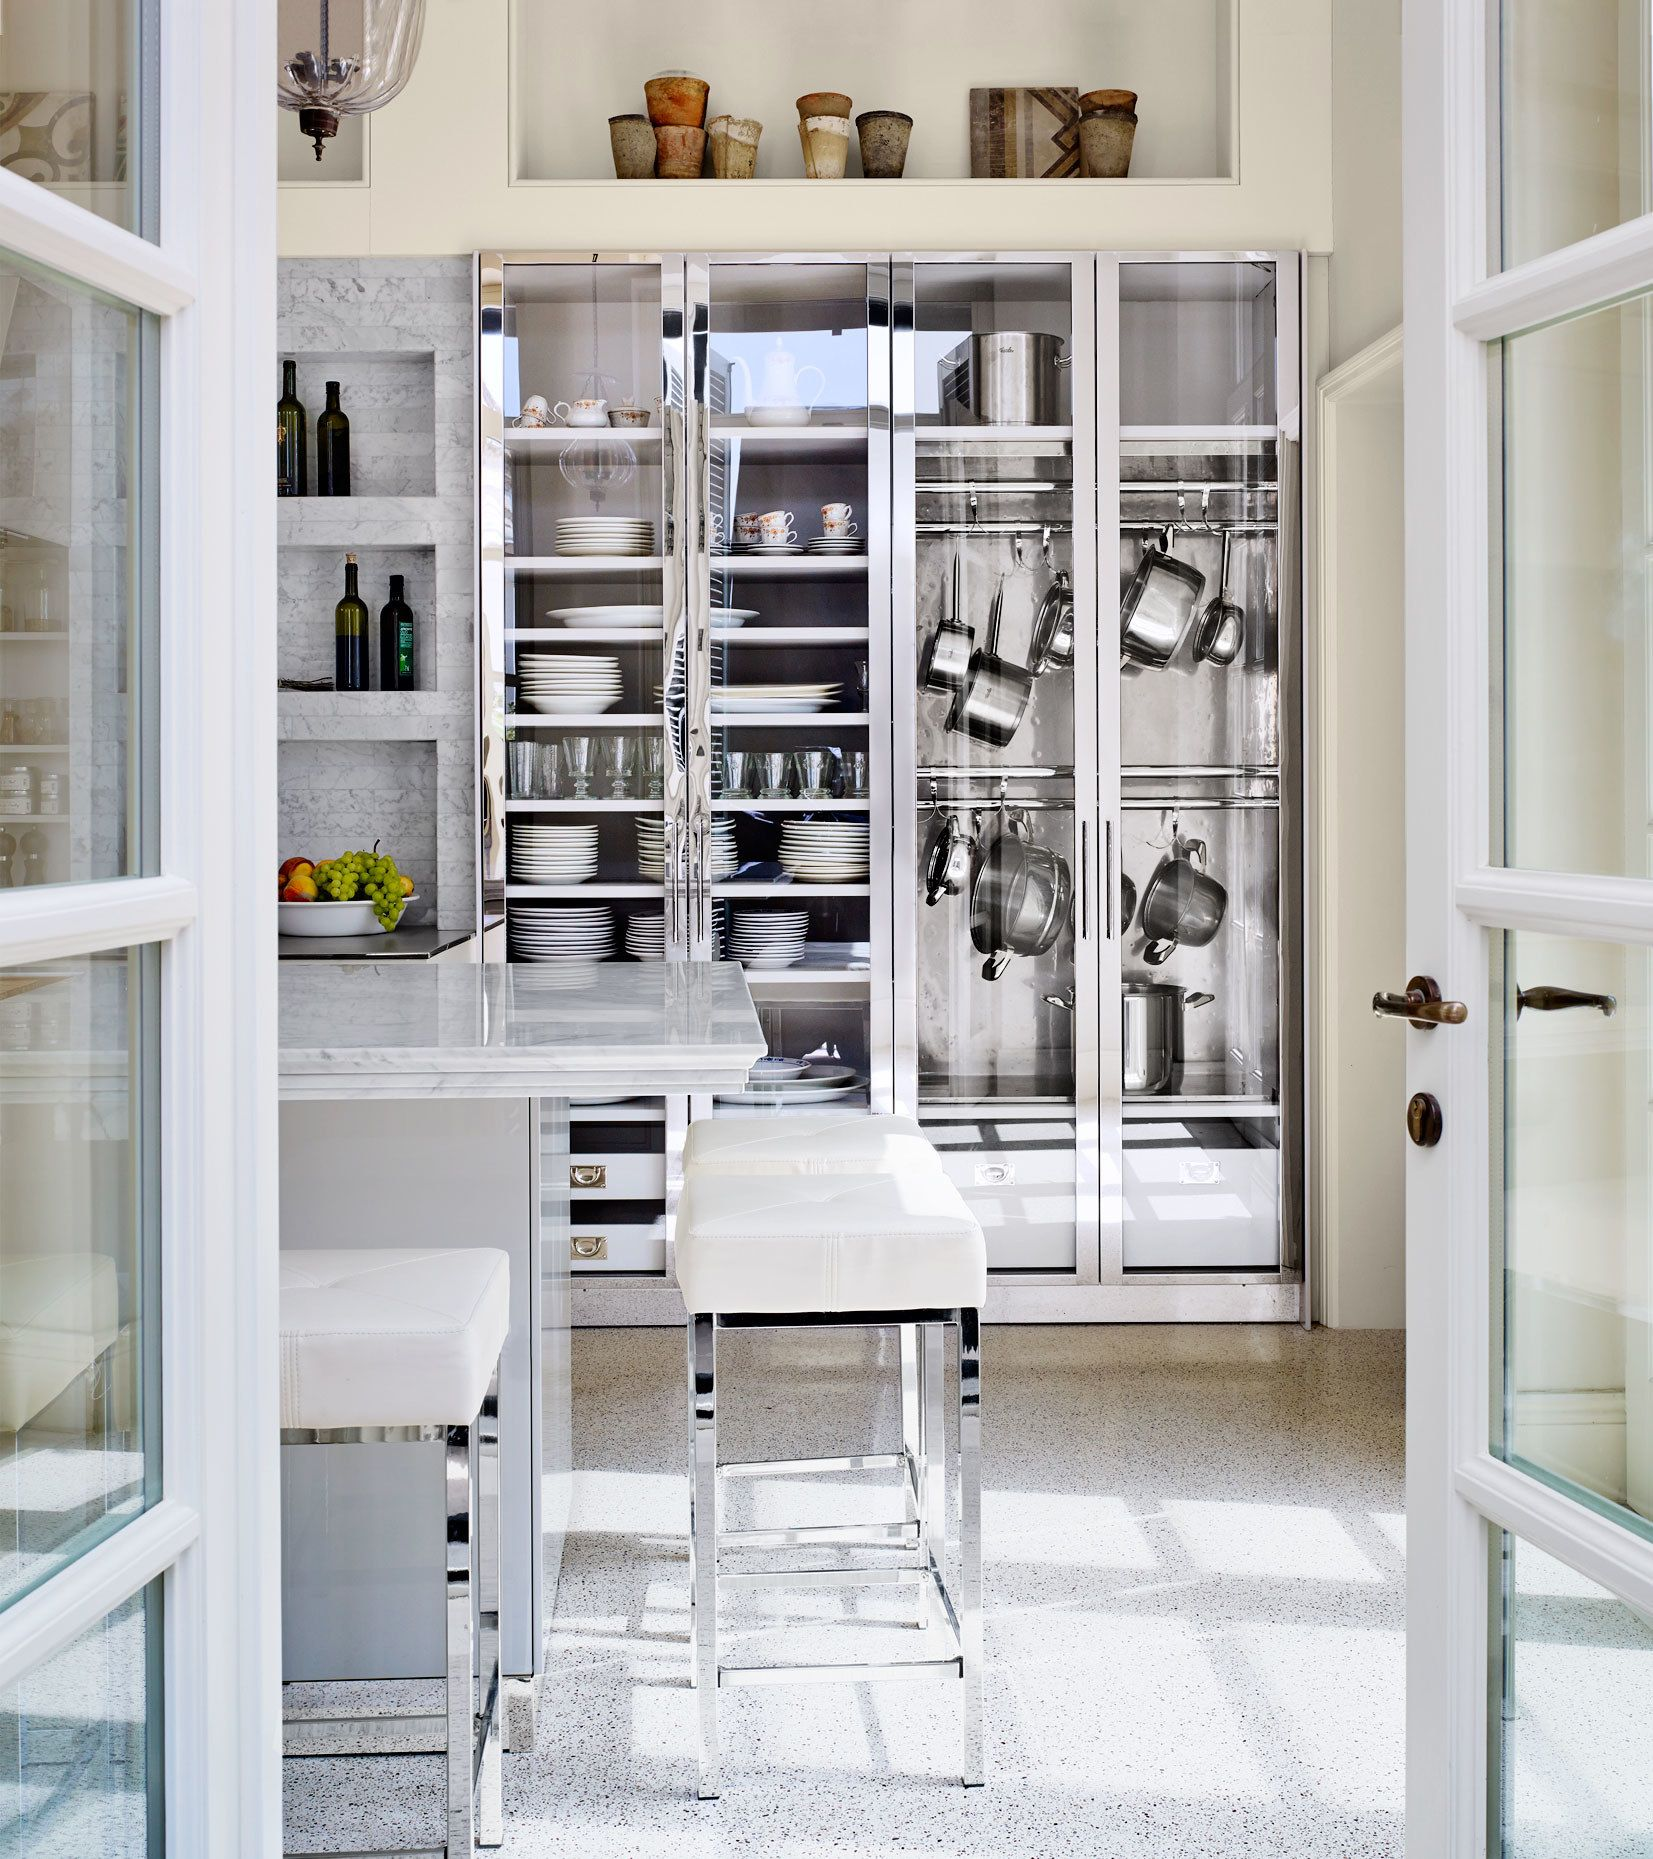 Ultimate Kitchen Layout: Mick De Giulio Creates The Ultimate Kitchen For A Coppola